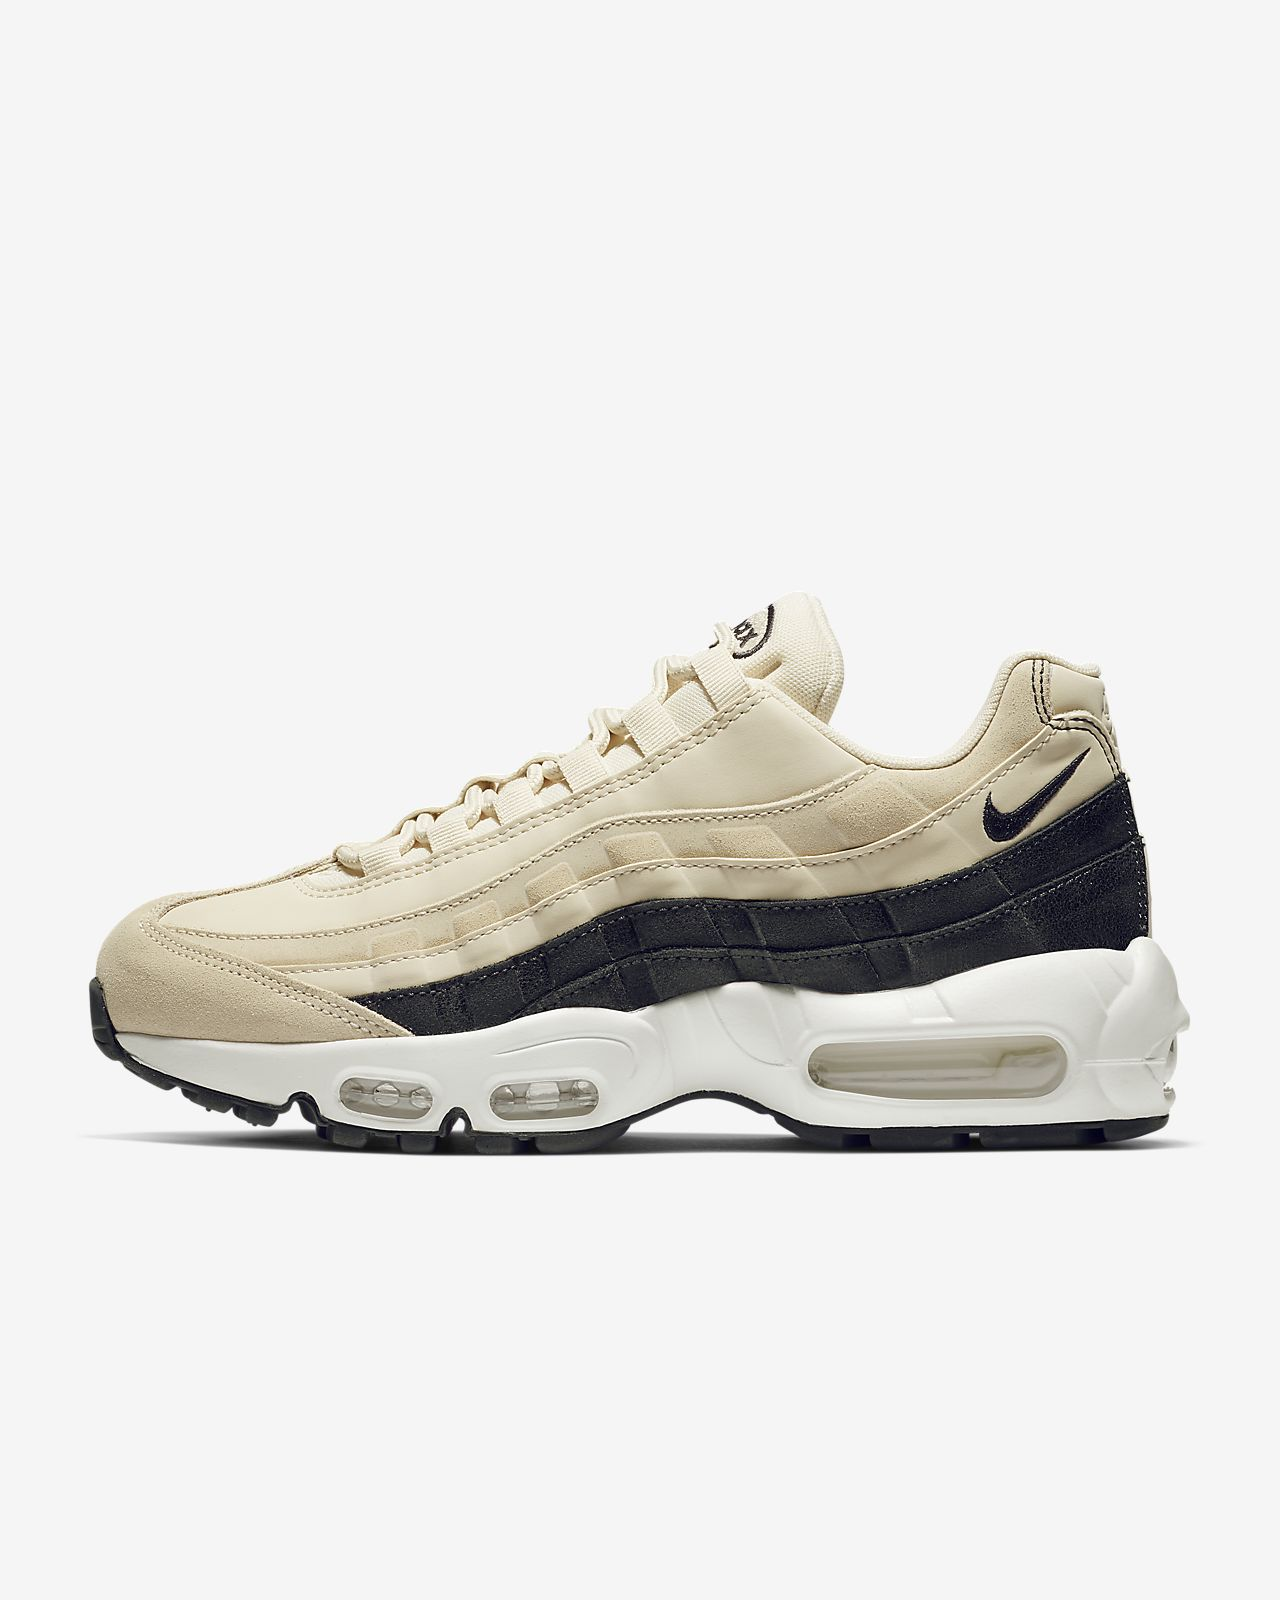 huge discount 4ef1d 0d502 ... Nike Air Max 95 Premium Women s Shoe